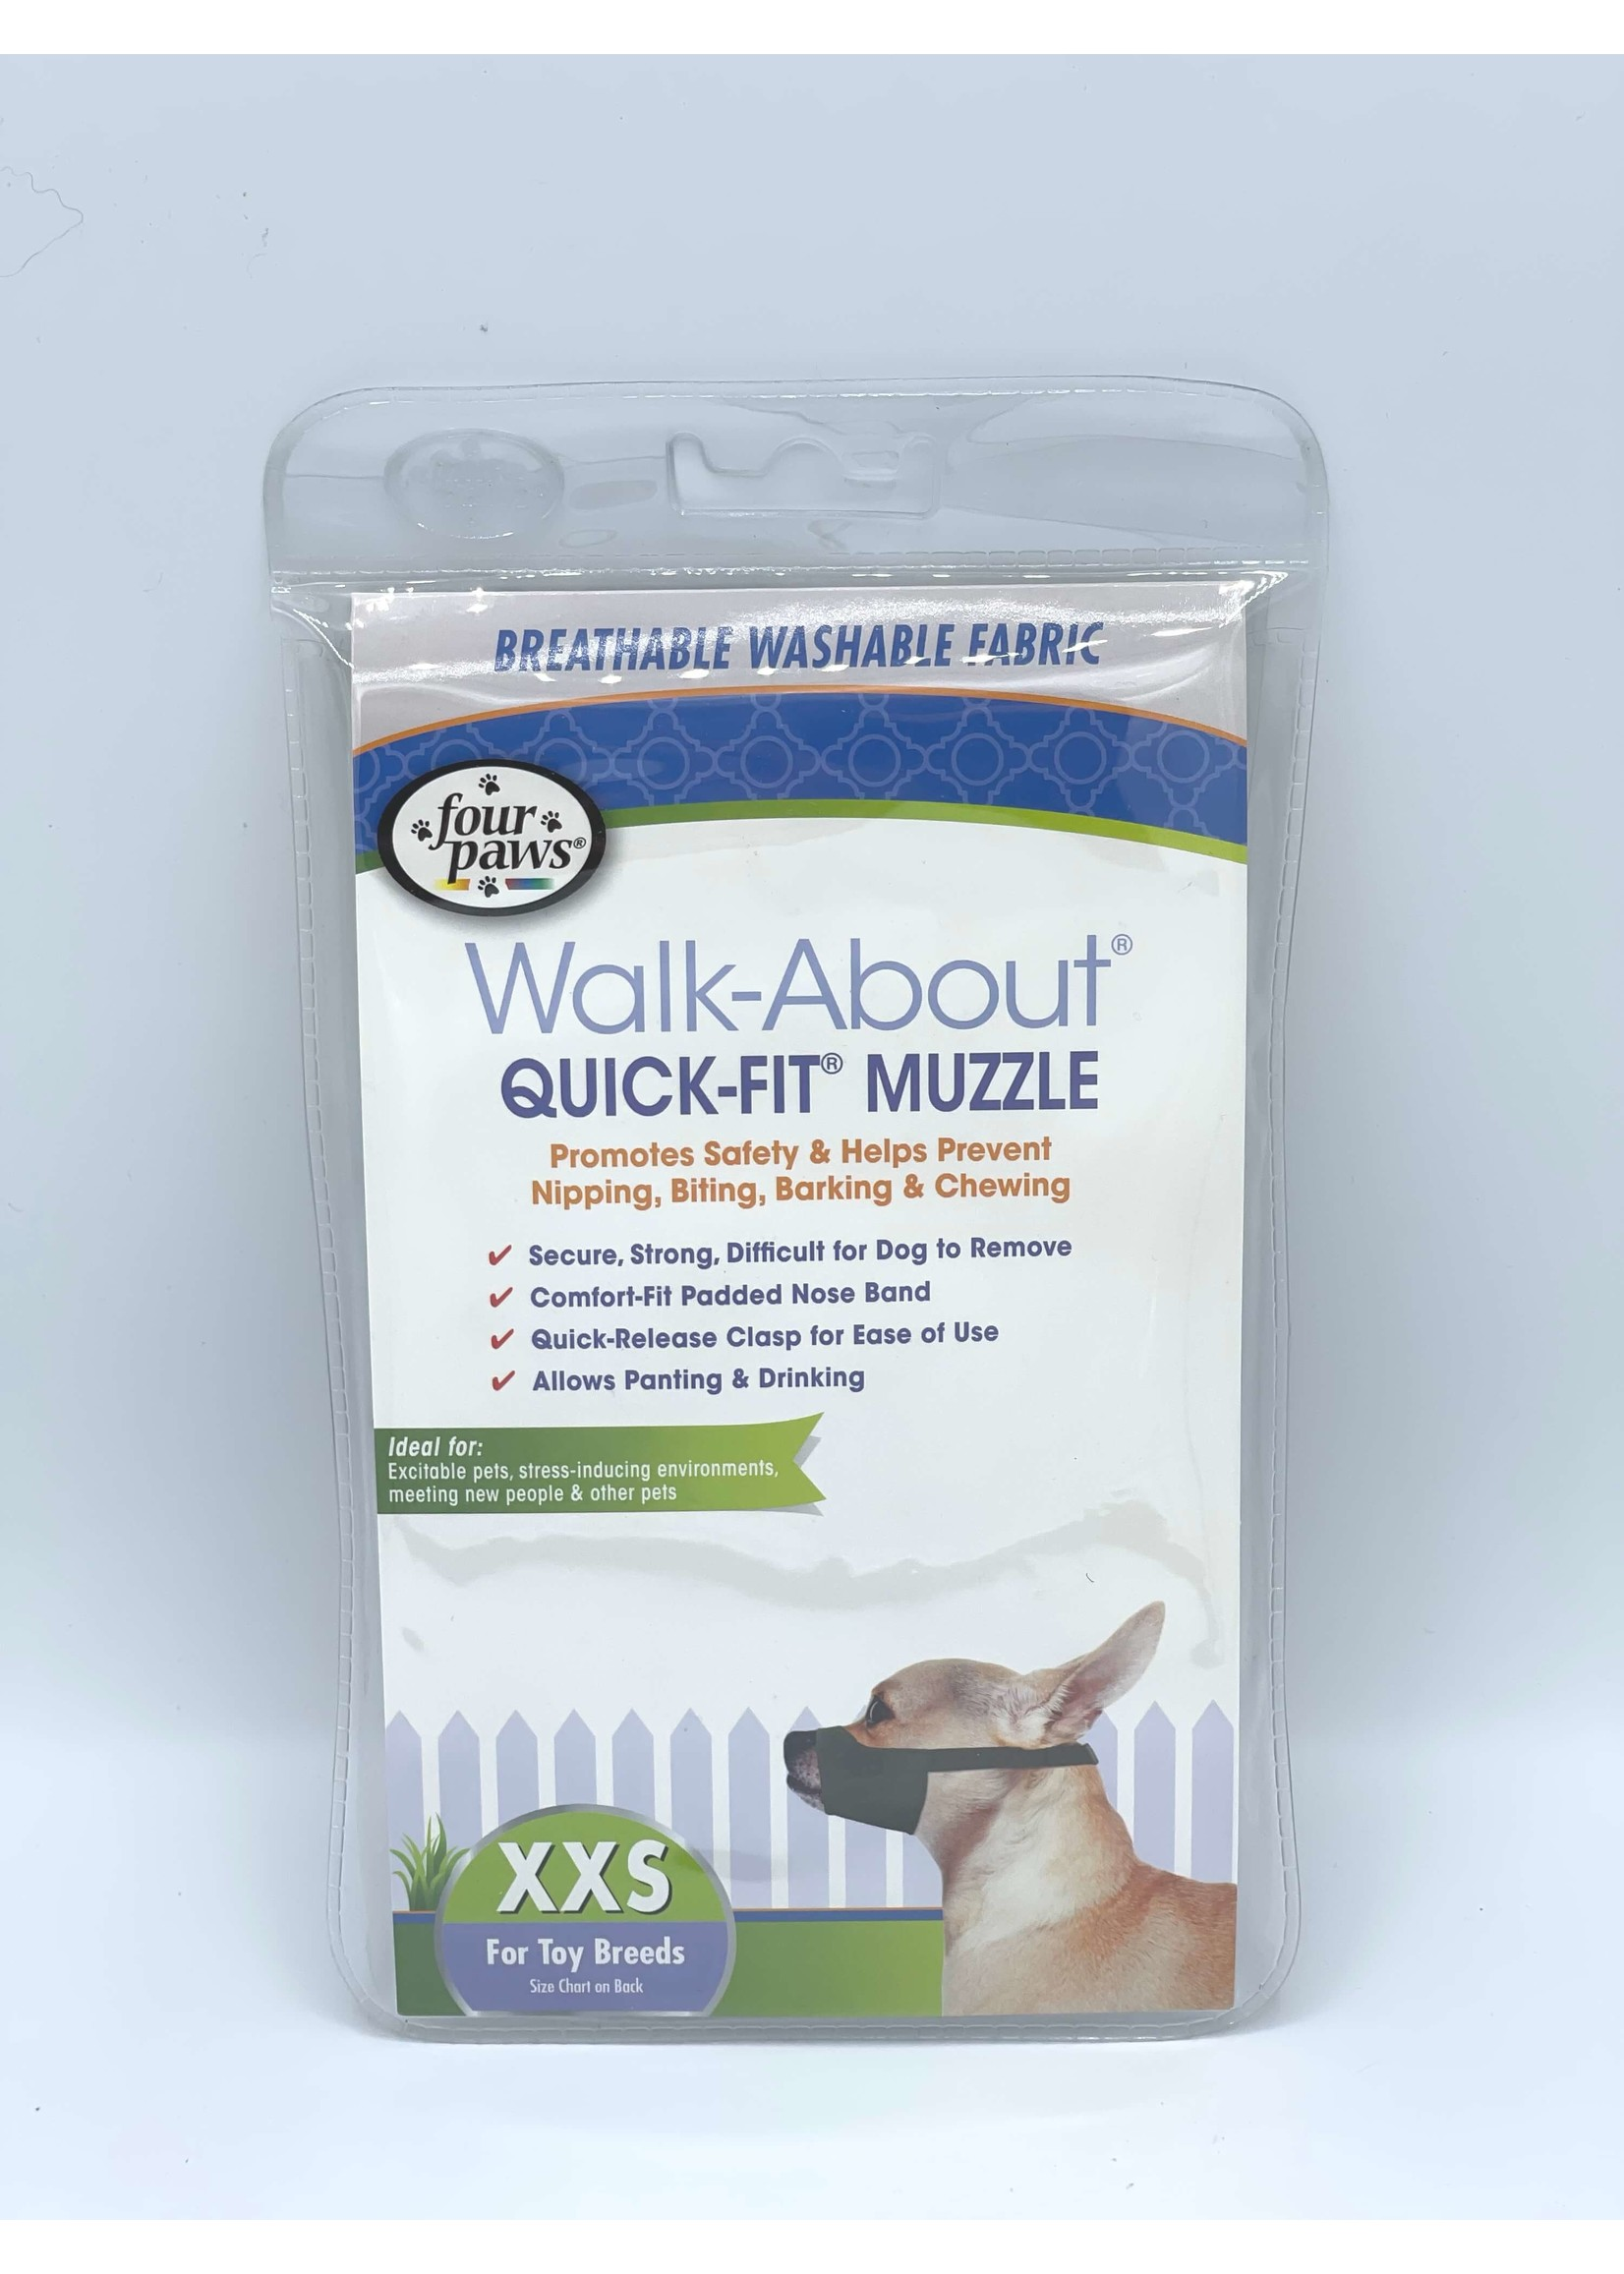 Four Paws Walk-About Quick-Fit Muzzle - Toy Breeds